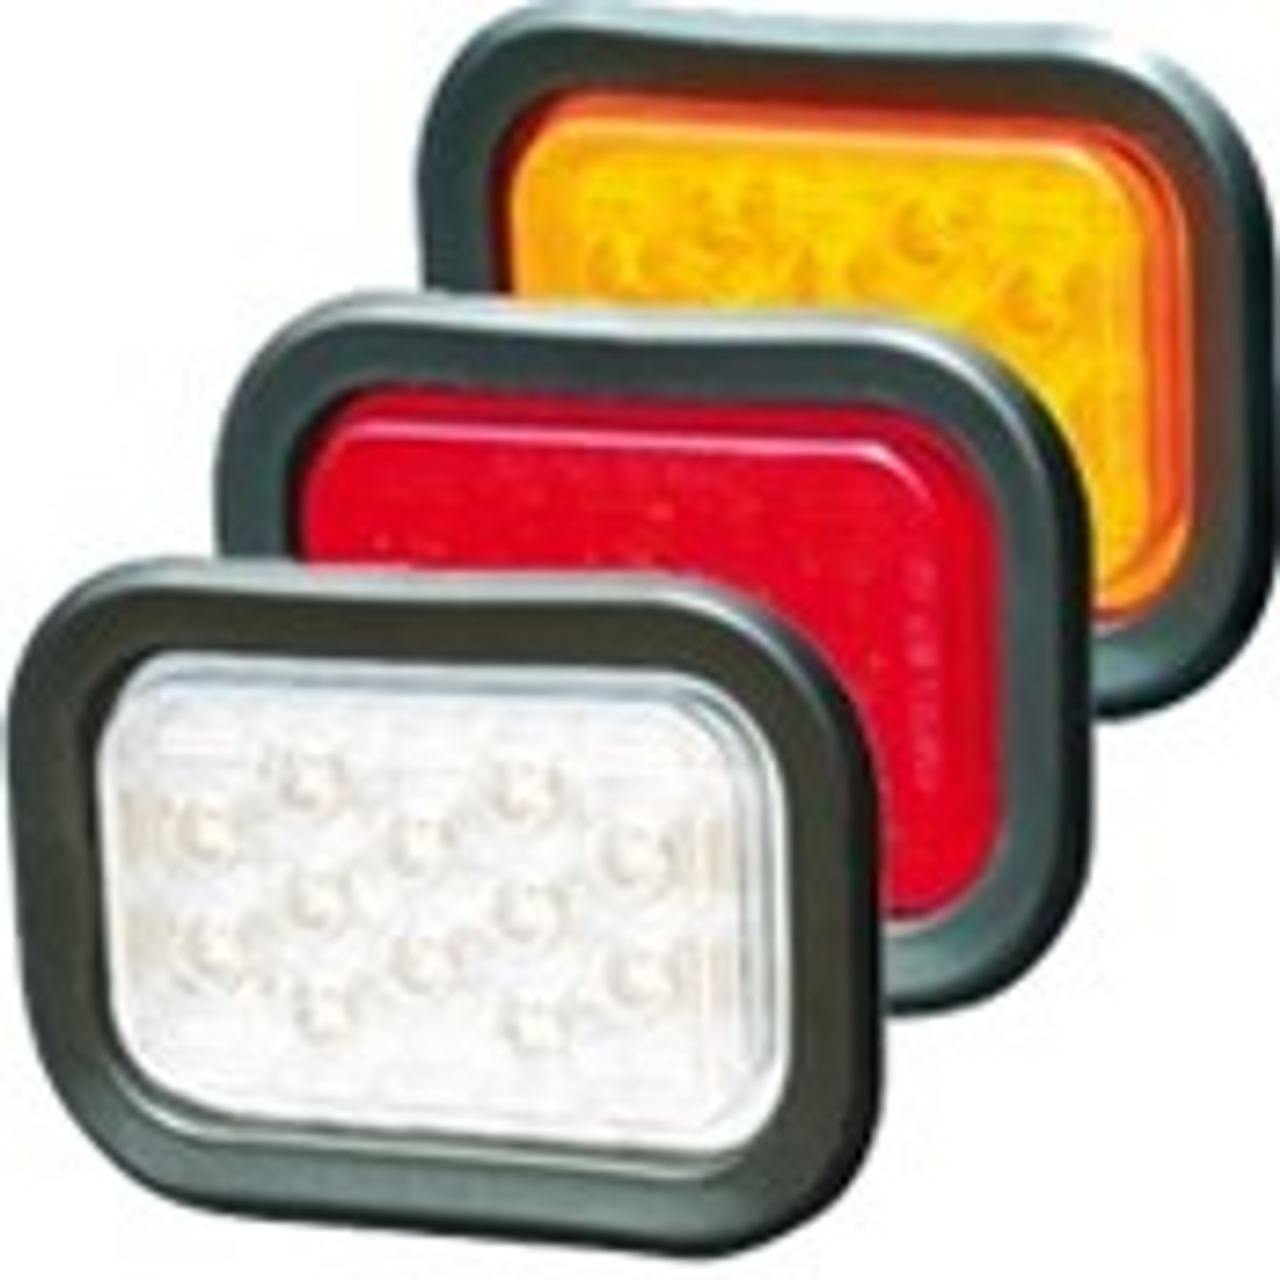 Available in - Stop Tail - Park Light. Indicator Light and Reverse Light